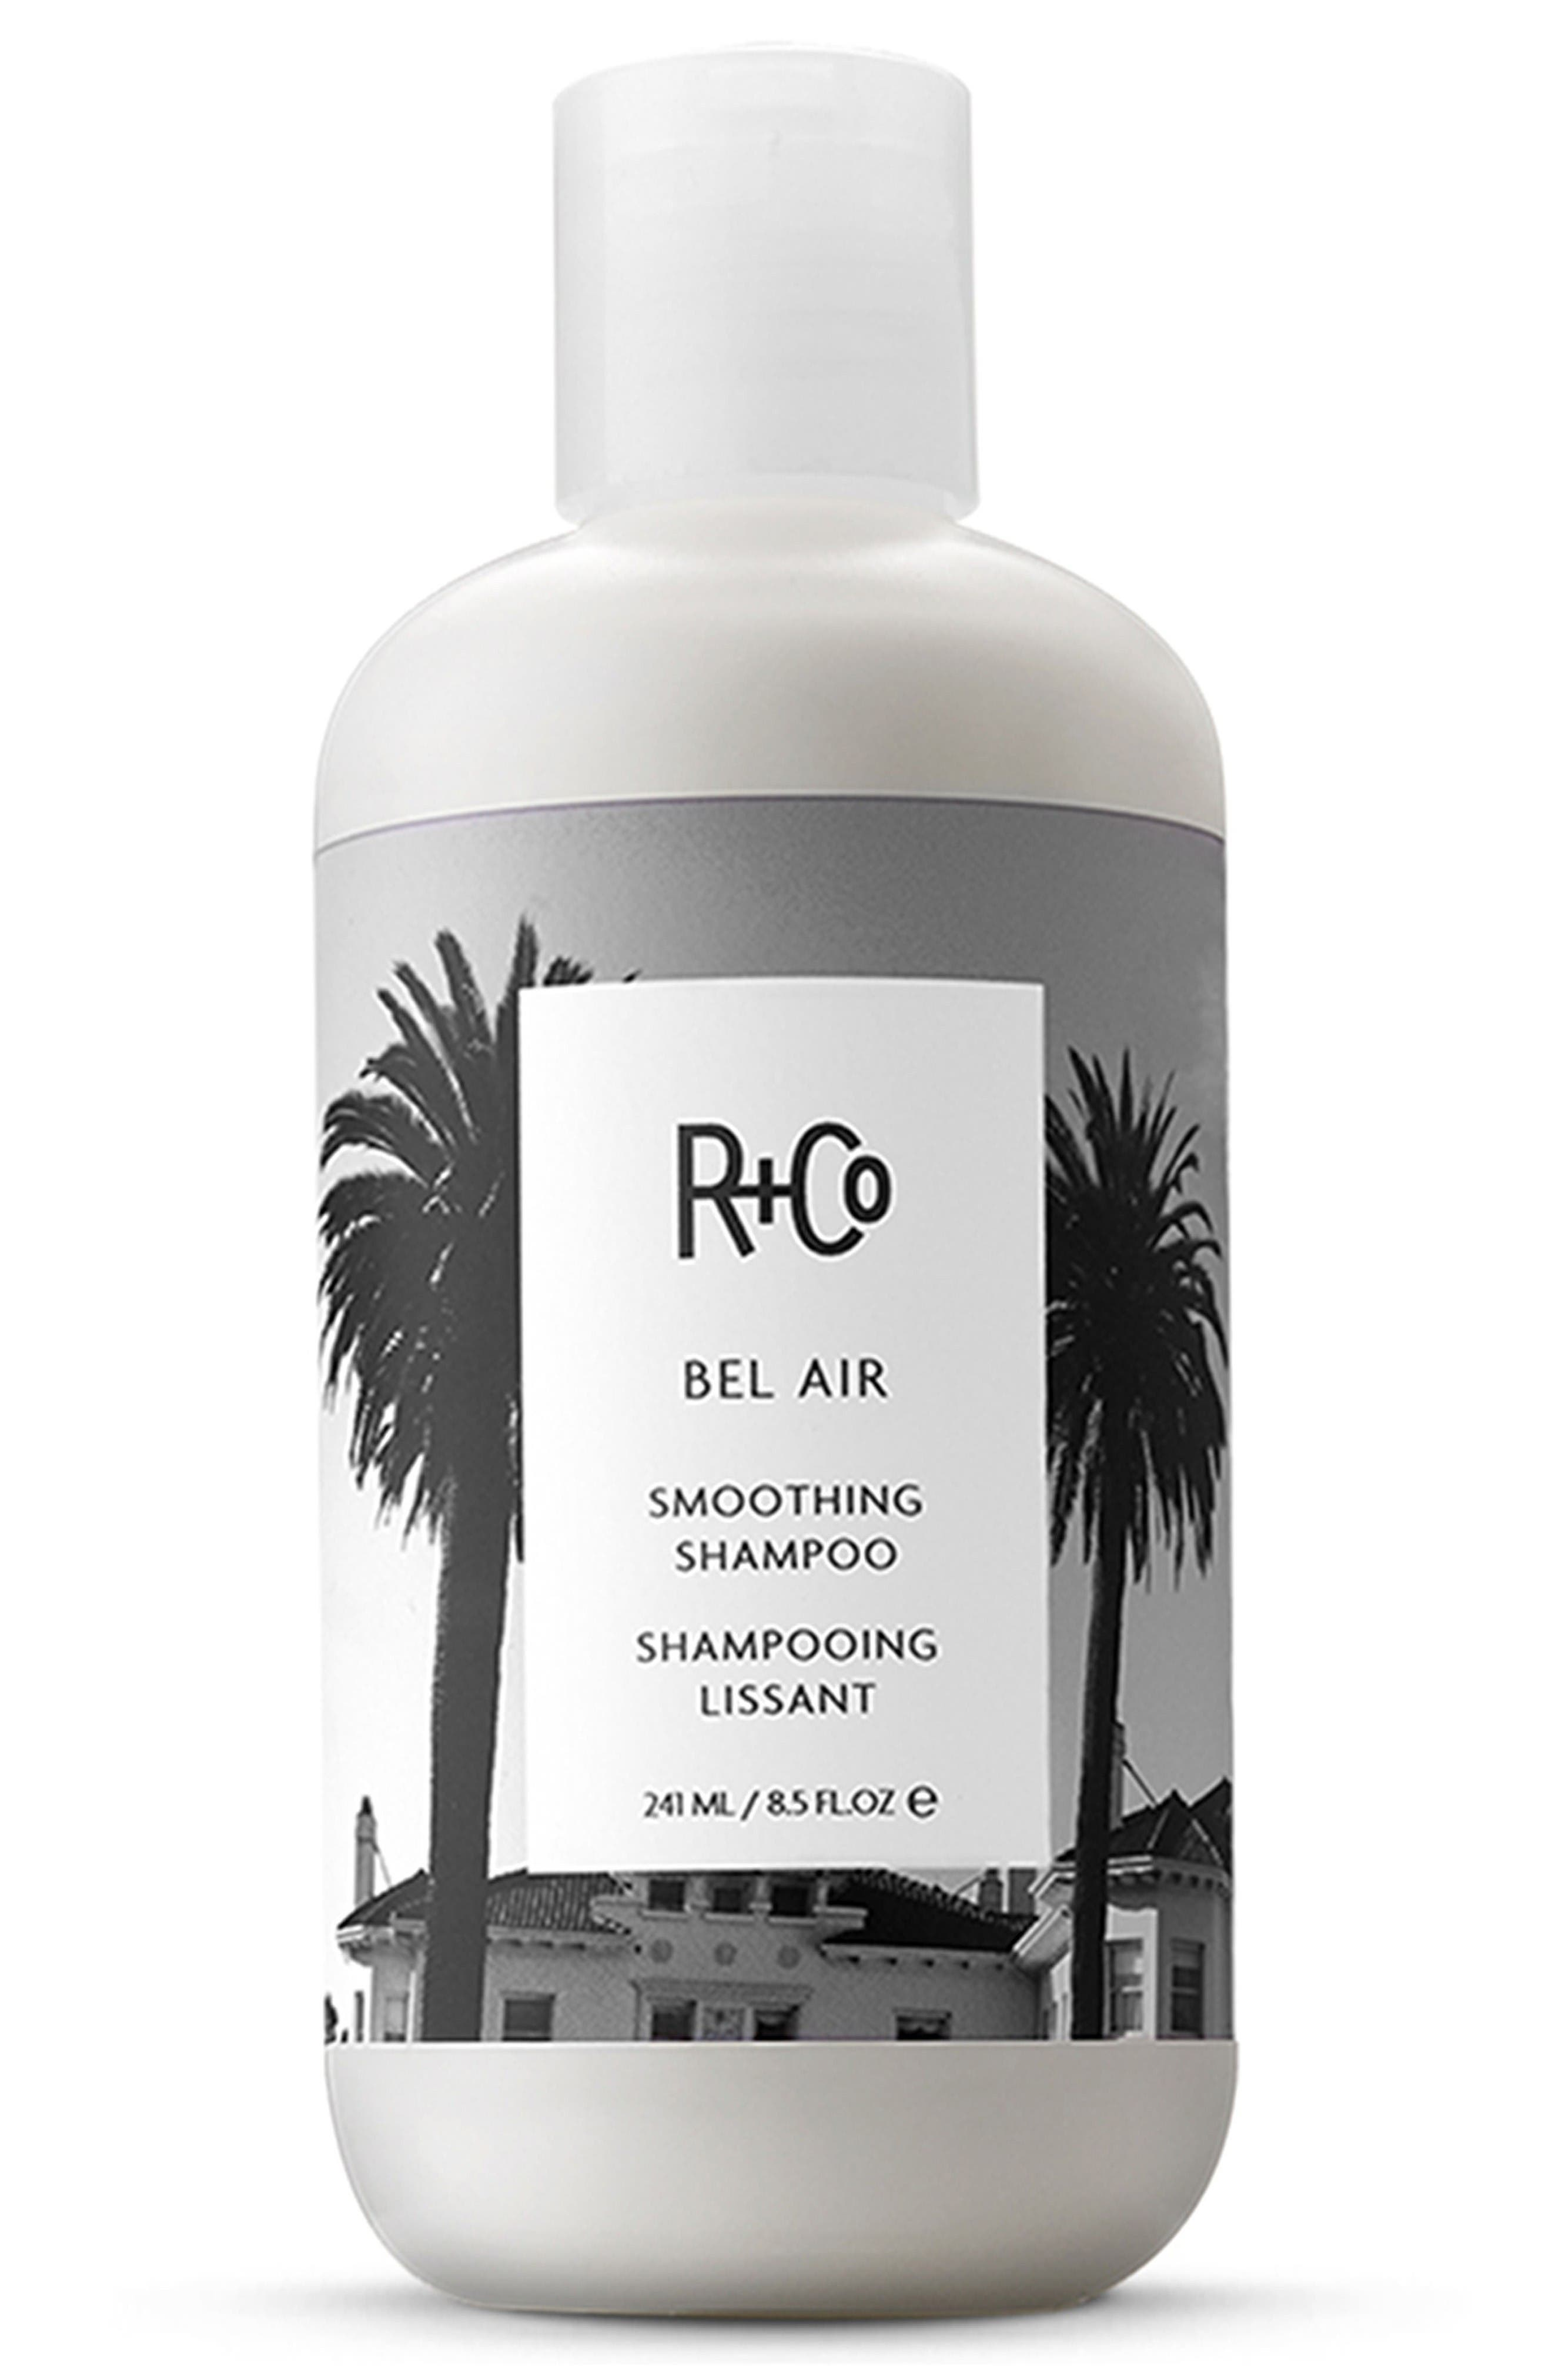 Alternate Image 1 Selected - SPACE.NK.apothecary R+Co Bel Air Smoothing Shampoo